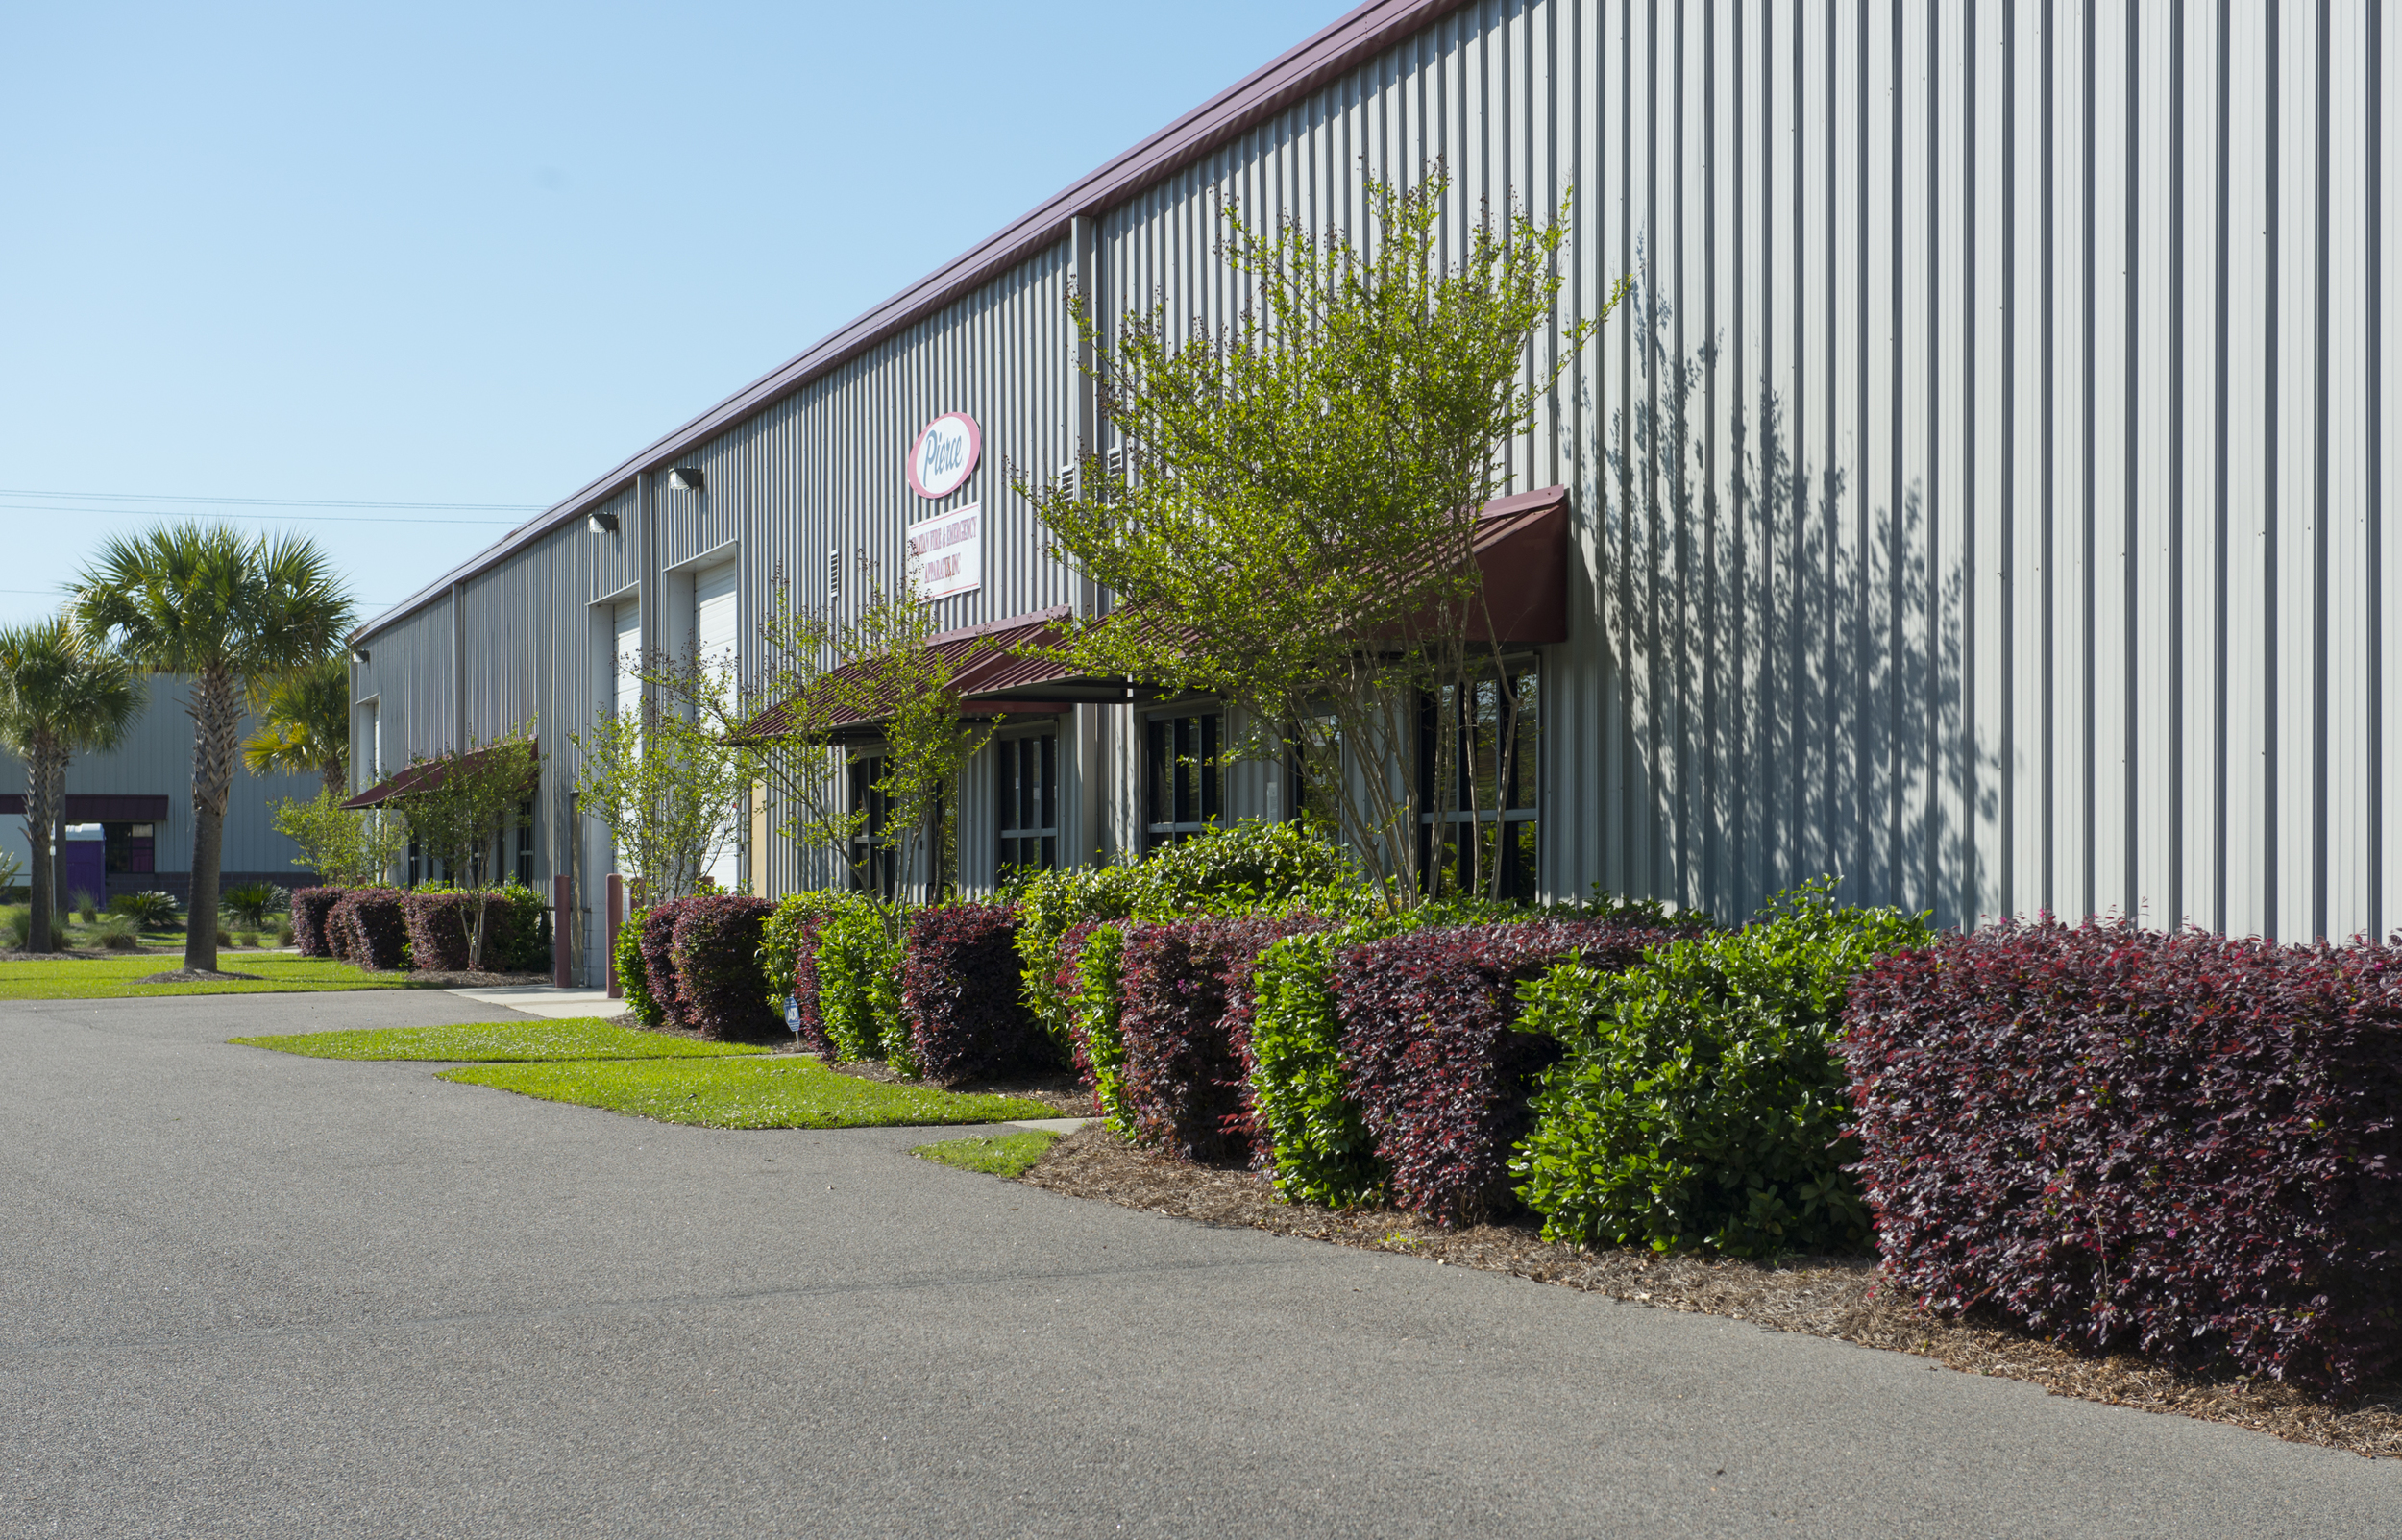 Cember Way Business Park